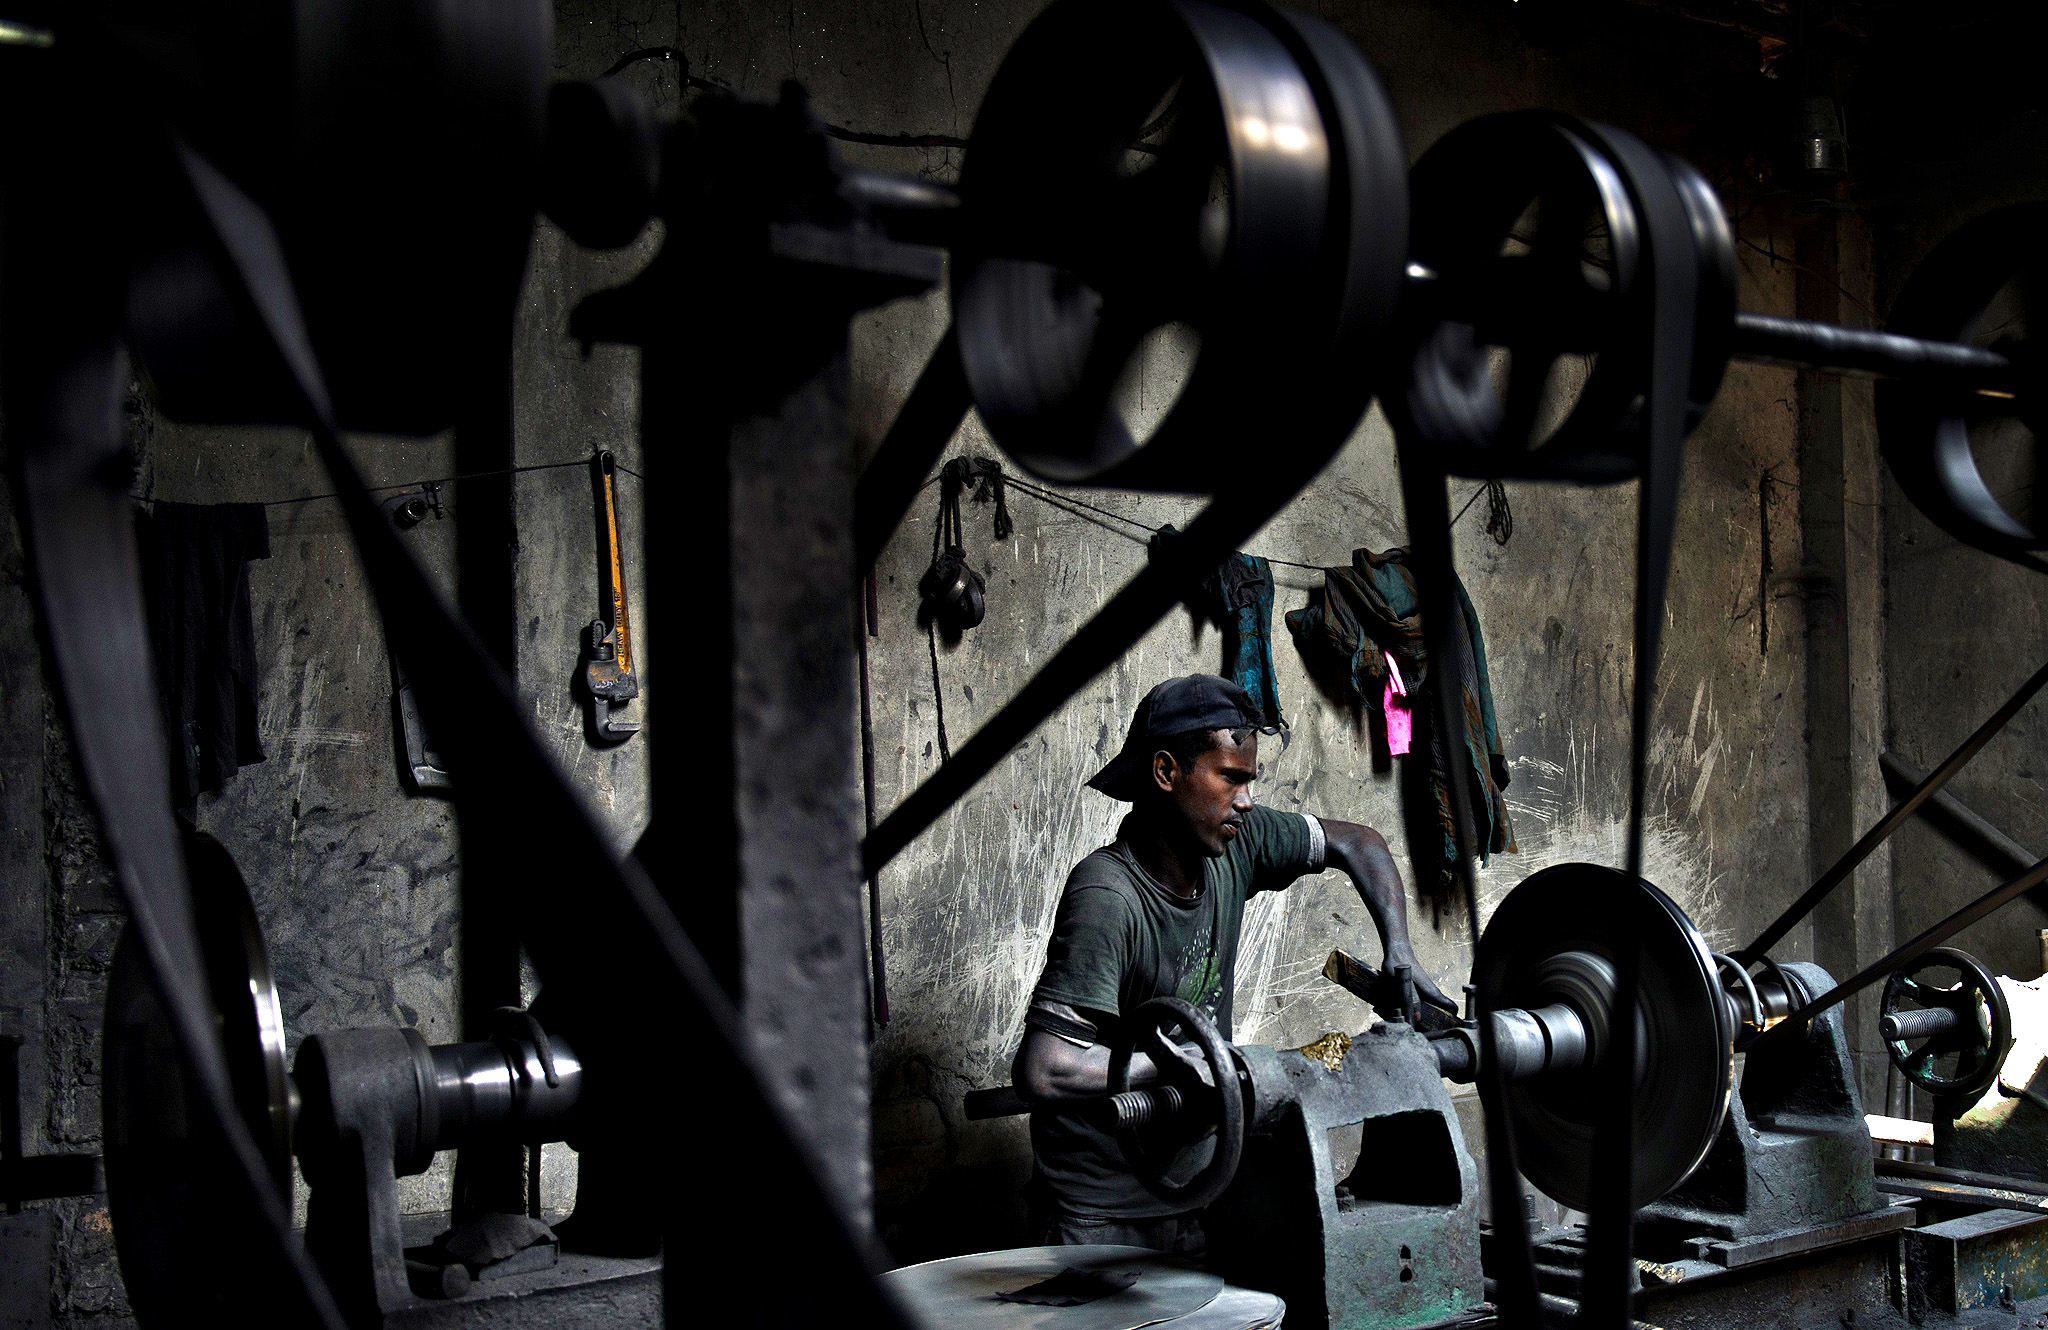 A Bangladeshi child labourer works at an aluminium pot factory in Dhaka on October 21, 2014. More than 6.3 million children under the age of 14 are working in Bangladesh, according to a UNICEF report on child labour.